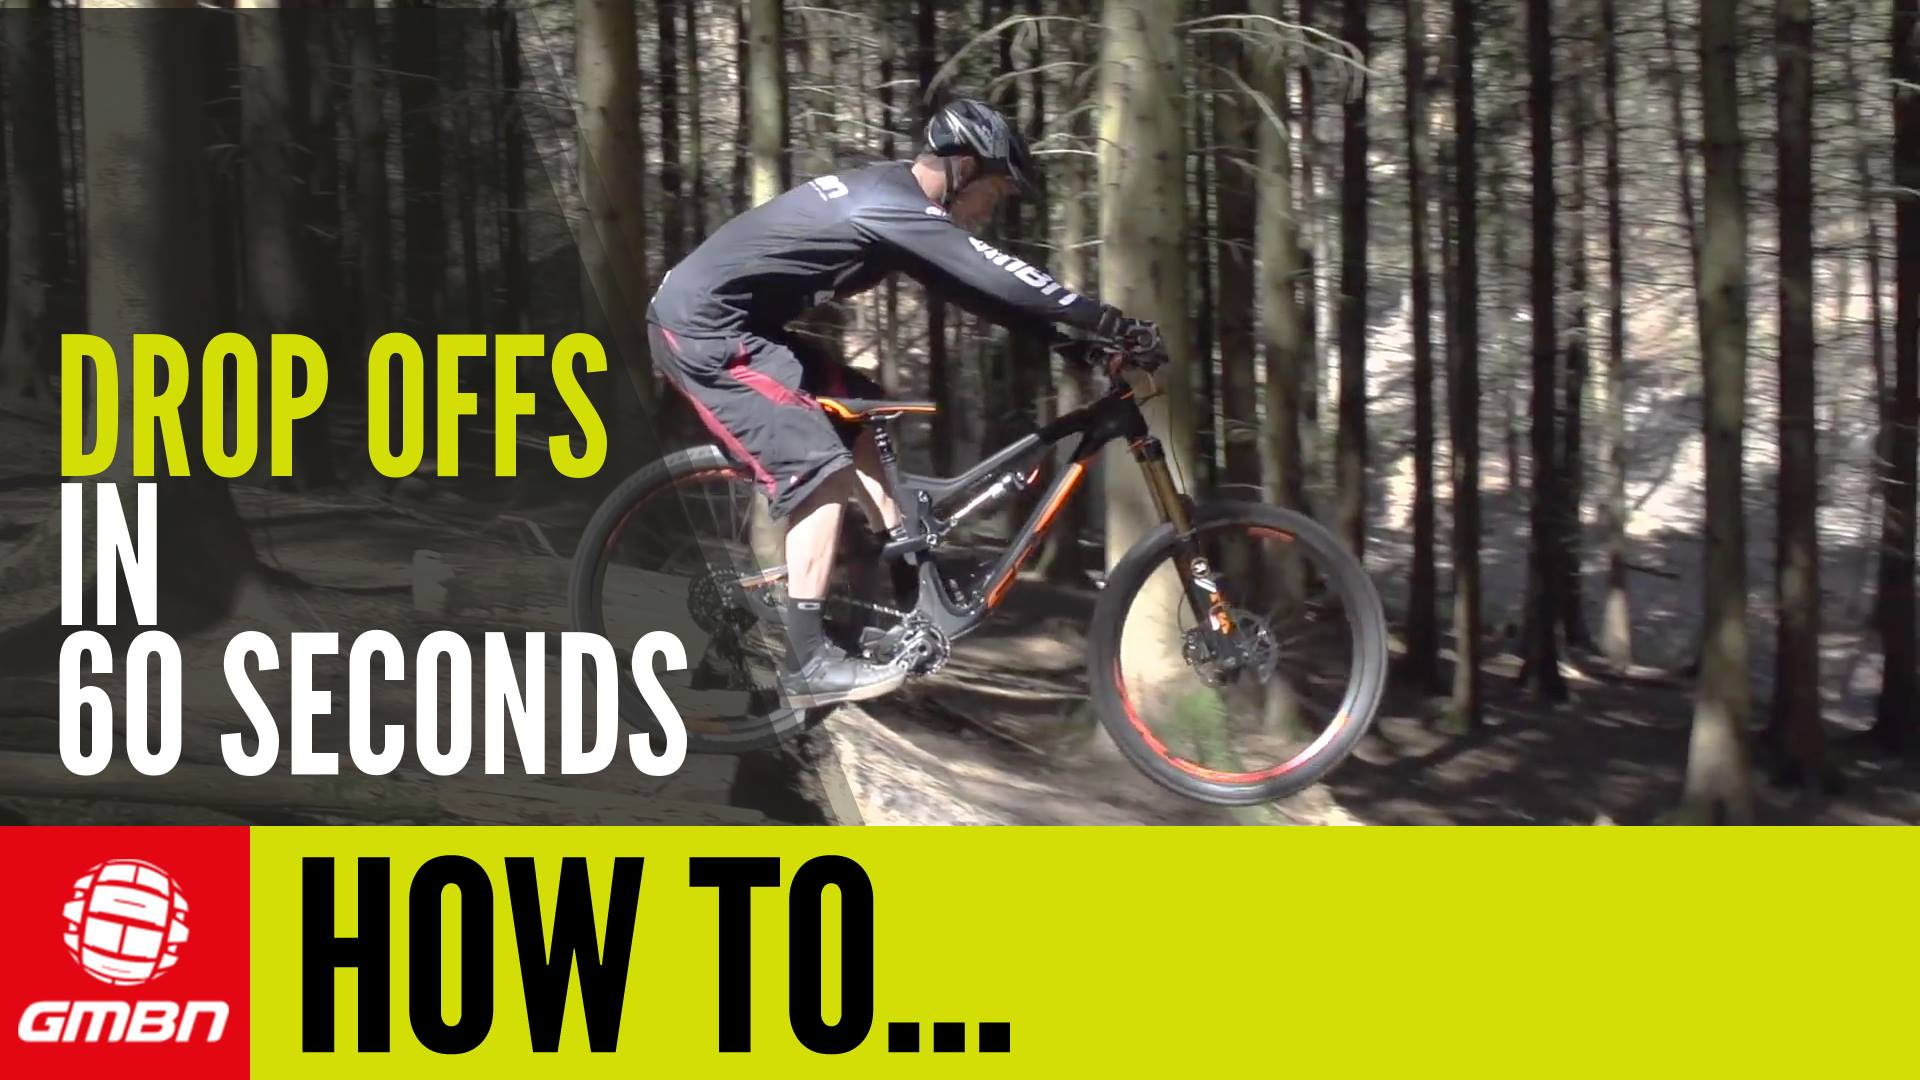 Video: Learn How To Ride Drop Offs In (Nearly) 60 Seconds - Singletracks Mountain Bike News